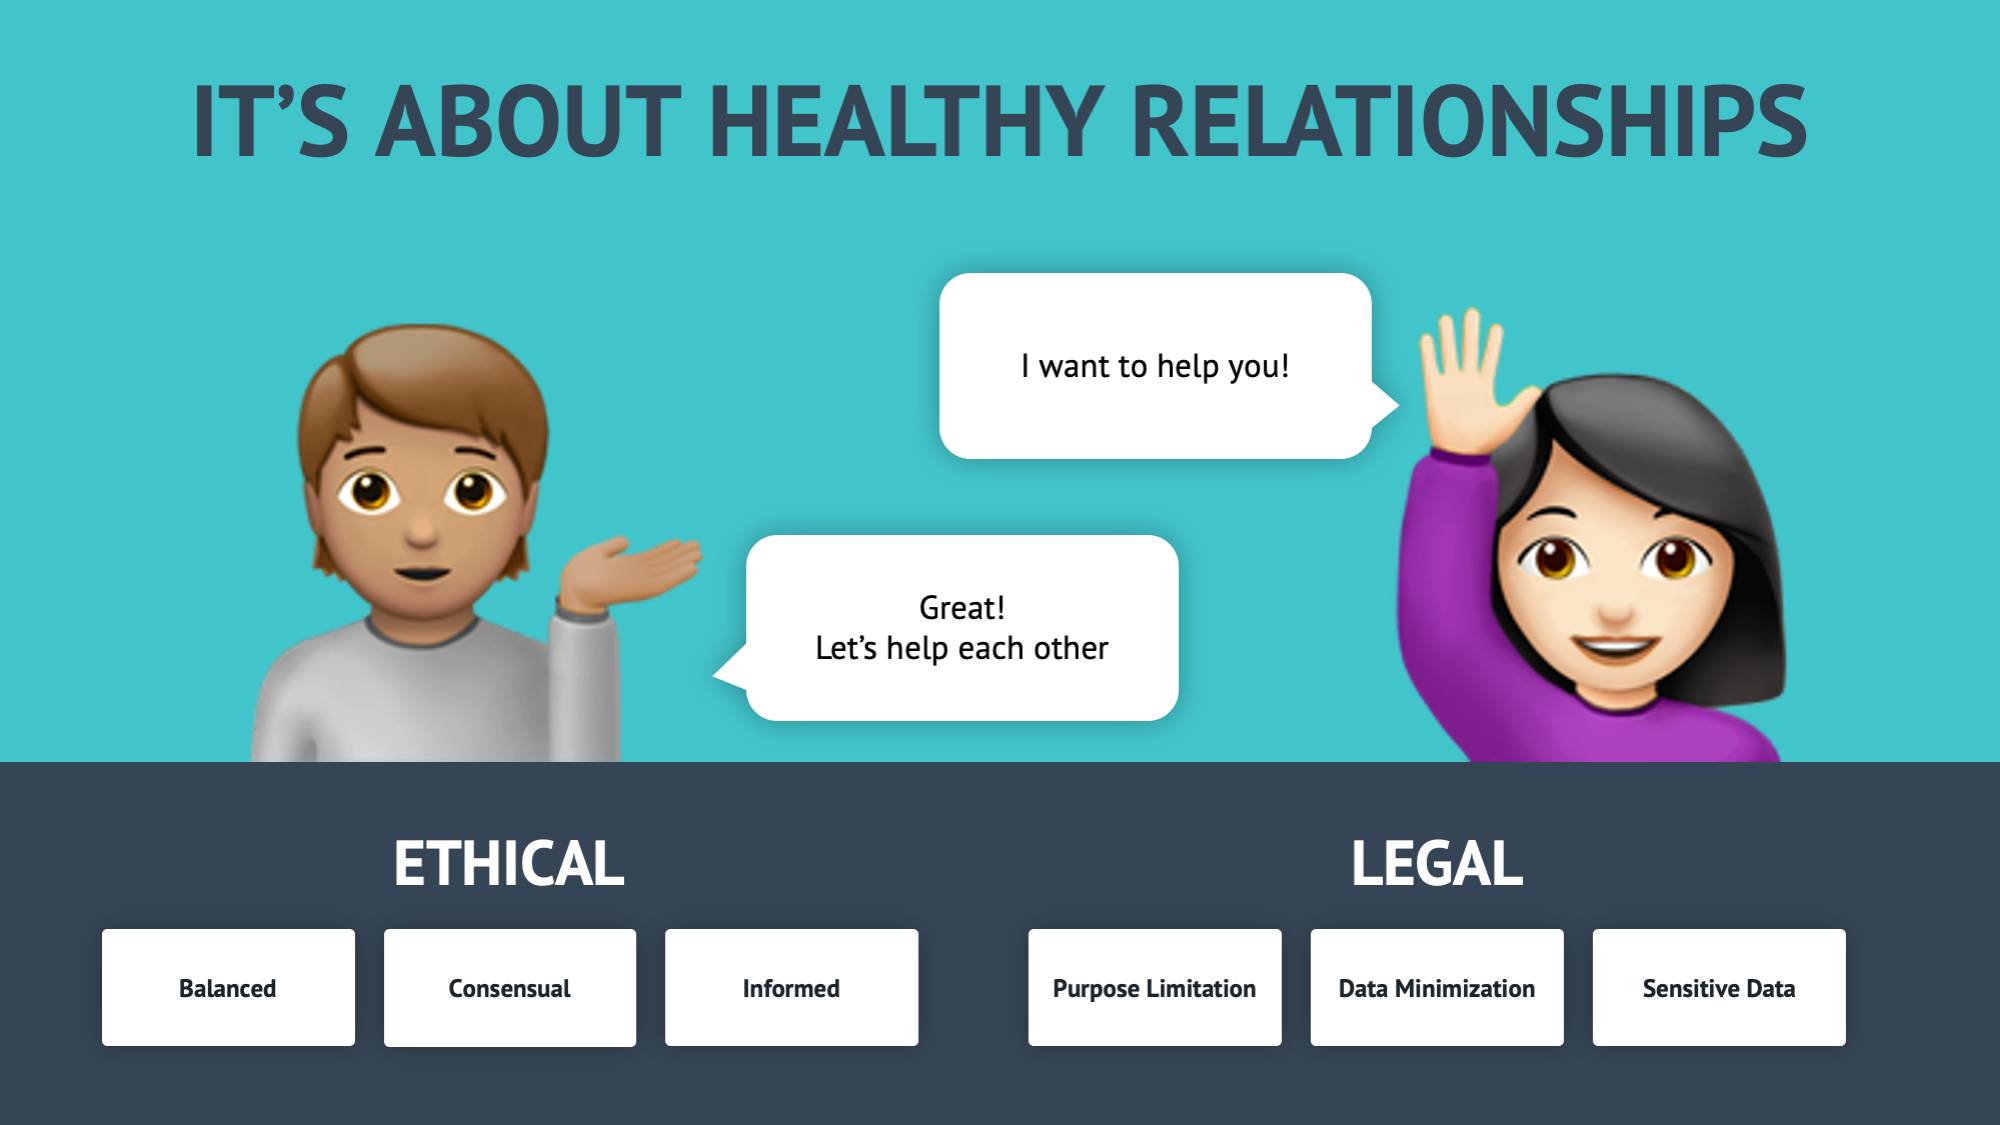 Privacy & Convenience: It's about healthy relationships. Balanced, consensual, and informed value exchange. Also collecting only the data you need for legitimate purposes, and treating sensitive data more carefully.